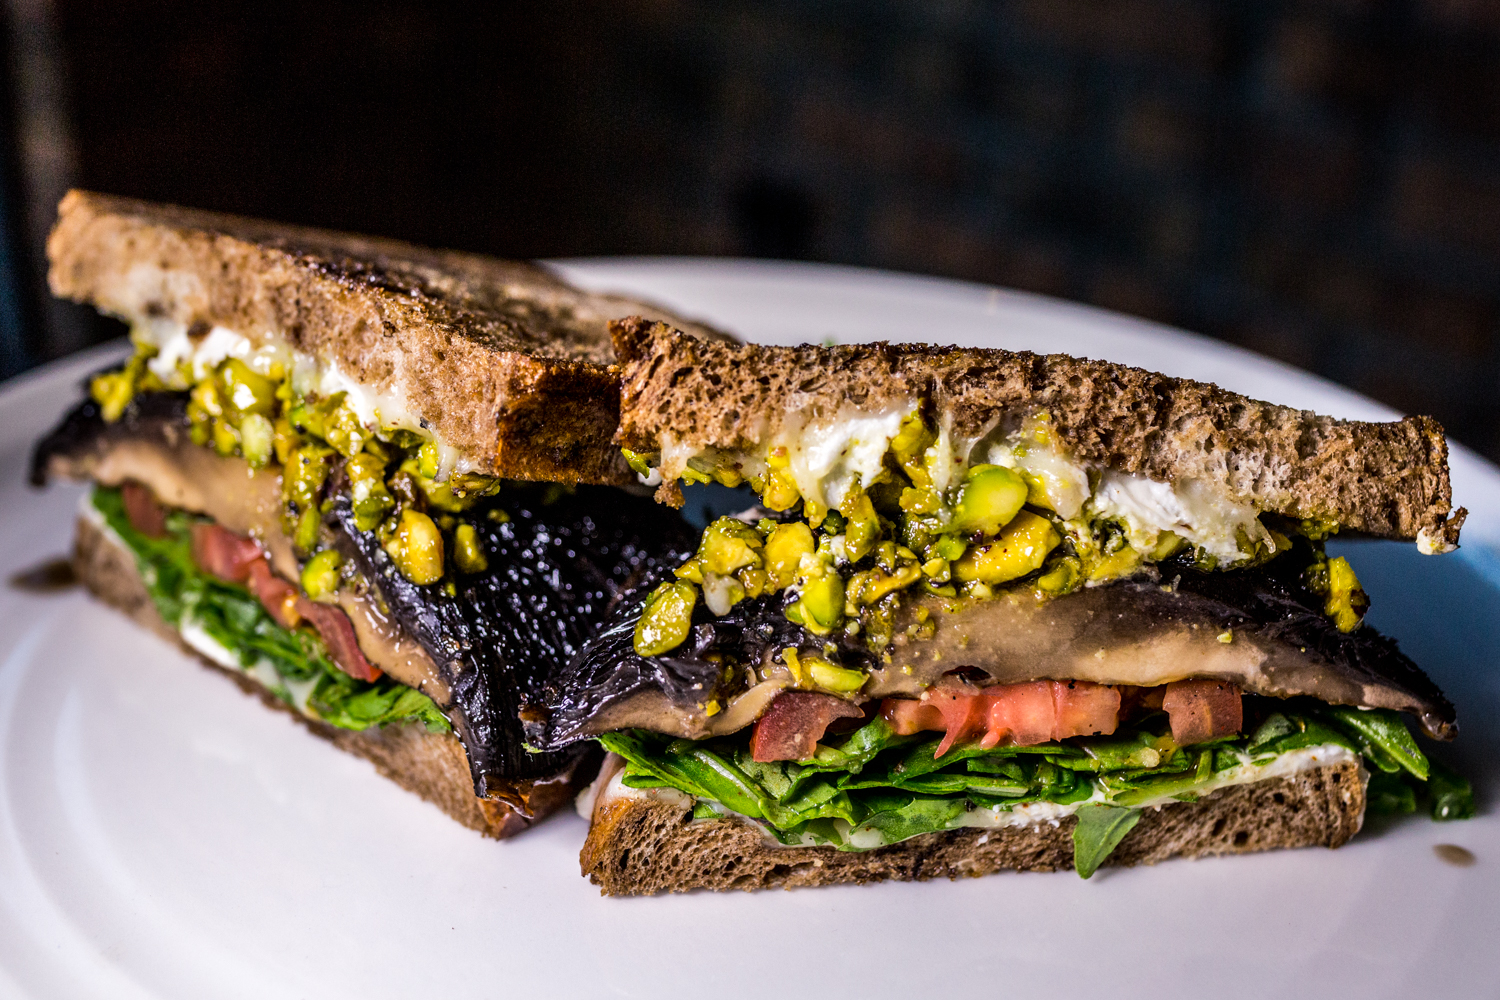 Portabella Melt: over roasted portabella mushroom on local grilled rye with arugula, Roma tomato slices, tangy goat cheese, parlor blend cheese, and pistachio pesto / Image: Catherine Viox{ }// Published: 10.10.19